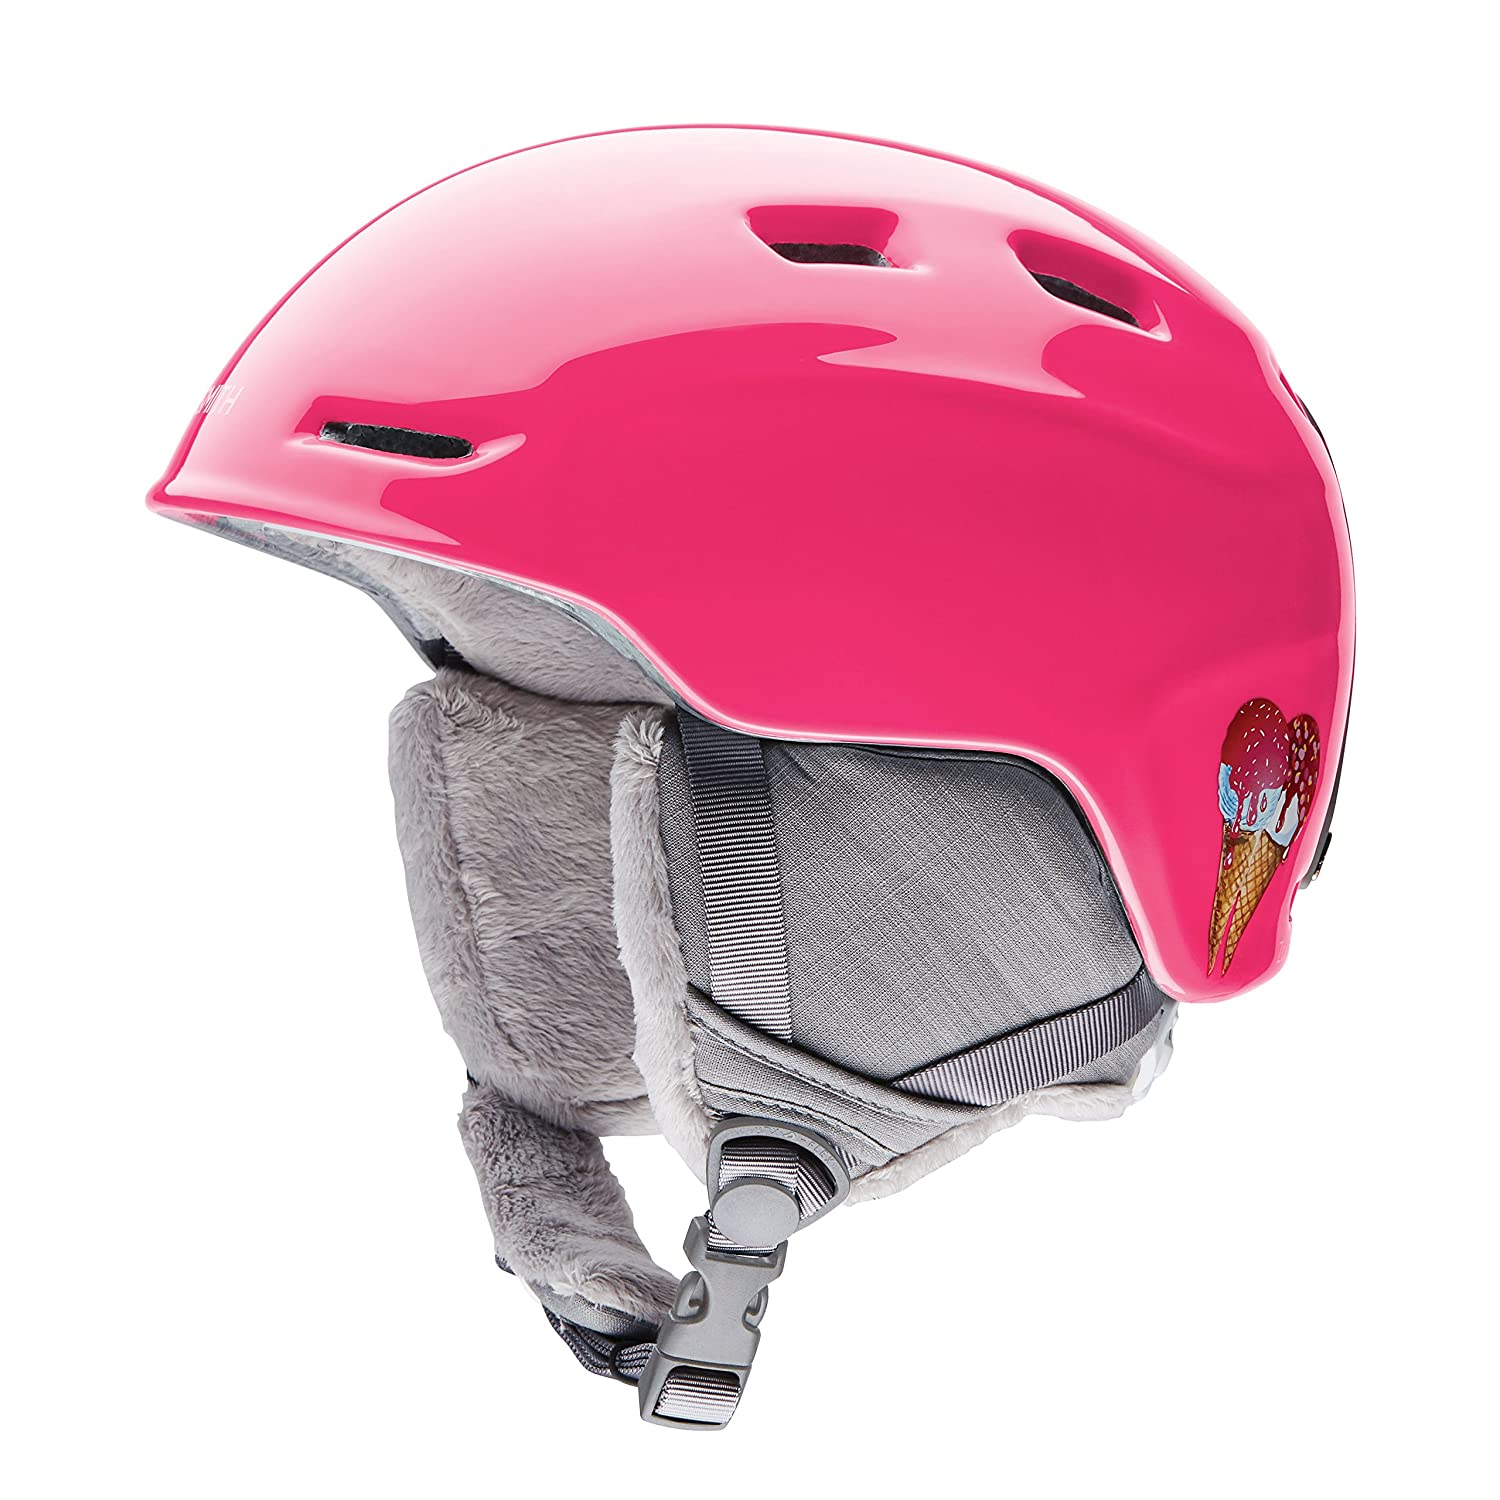 b27c223ddd1 Smith Zoom Junior Helmet 2018 H13-ZOBLY-P  1541757660-8869  - £30.94